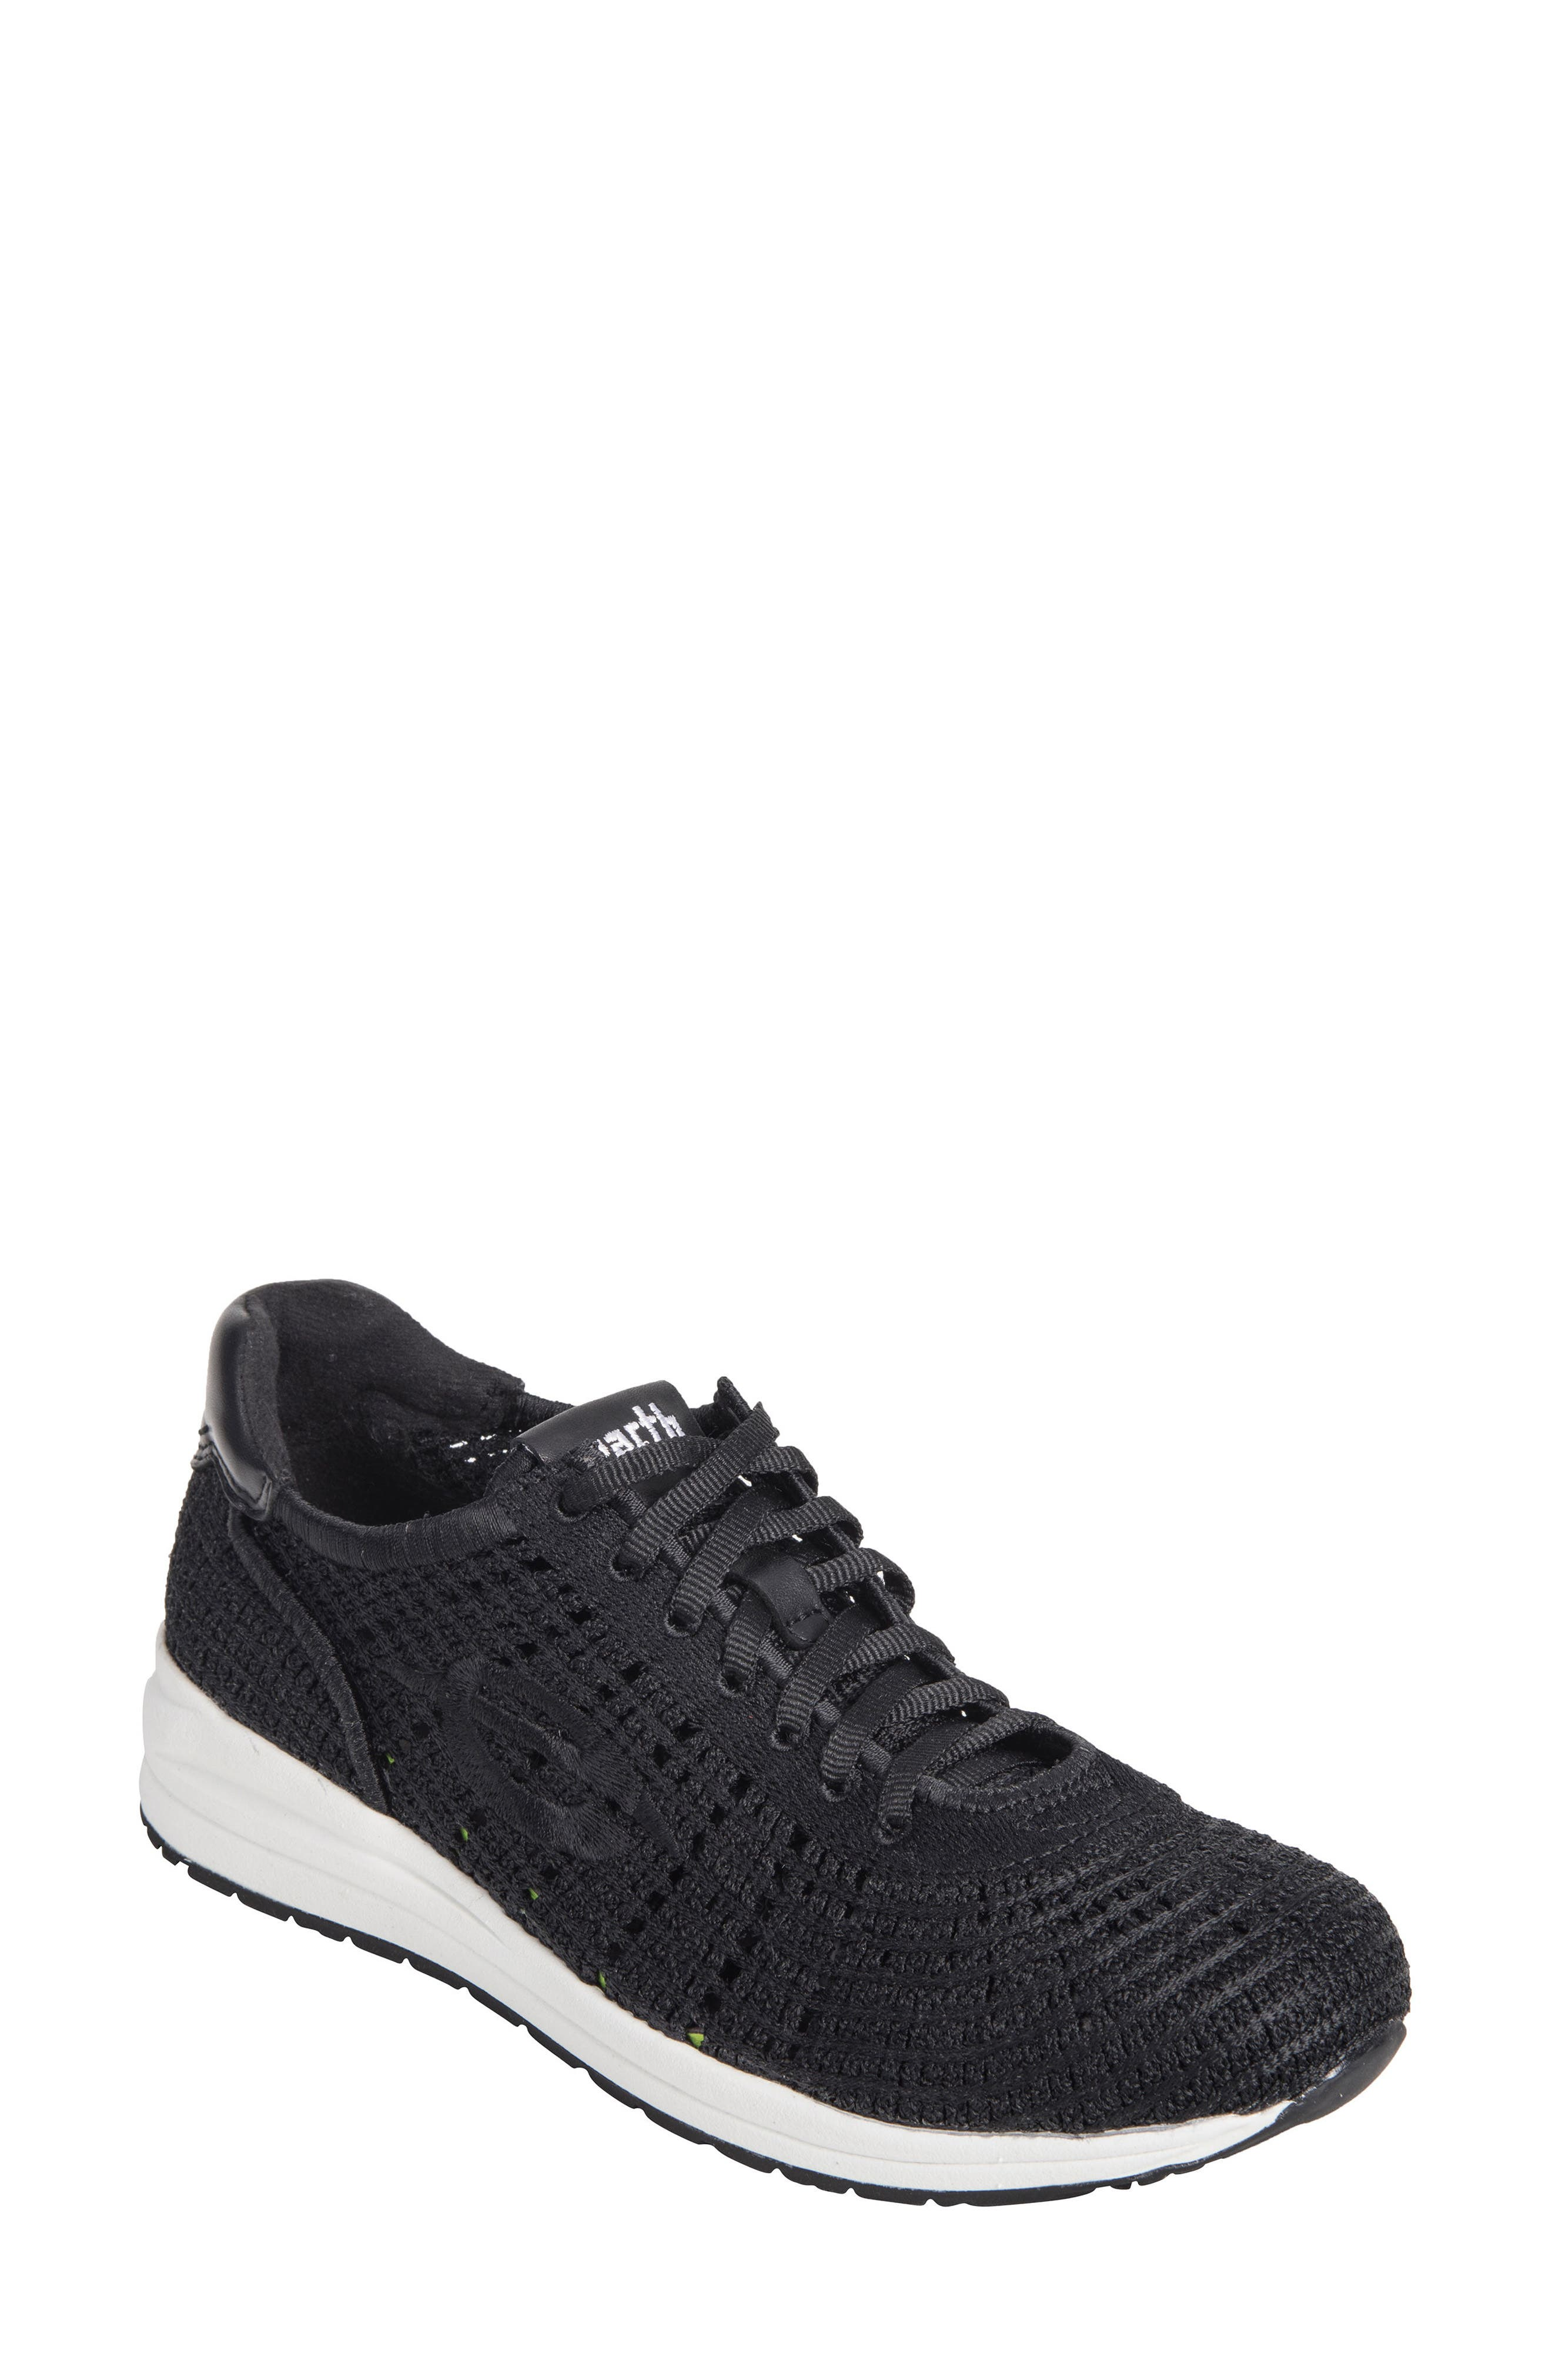 Earth Vital Sneaker,                         Main,                         color, BLACK